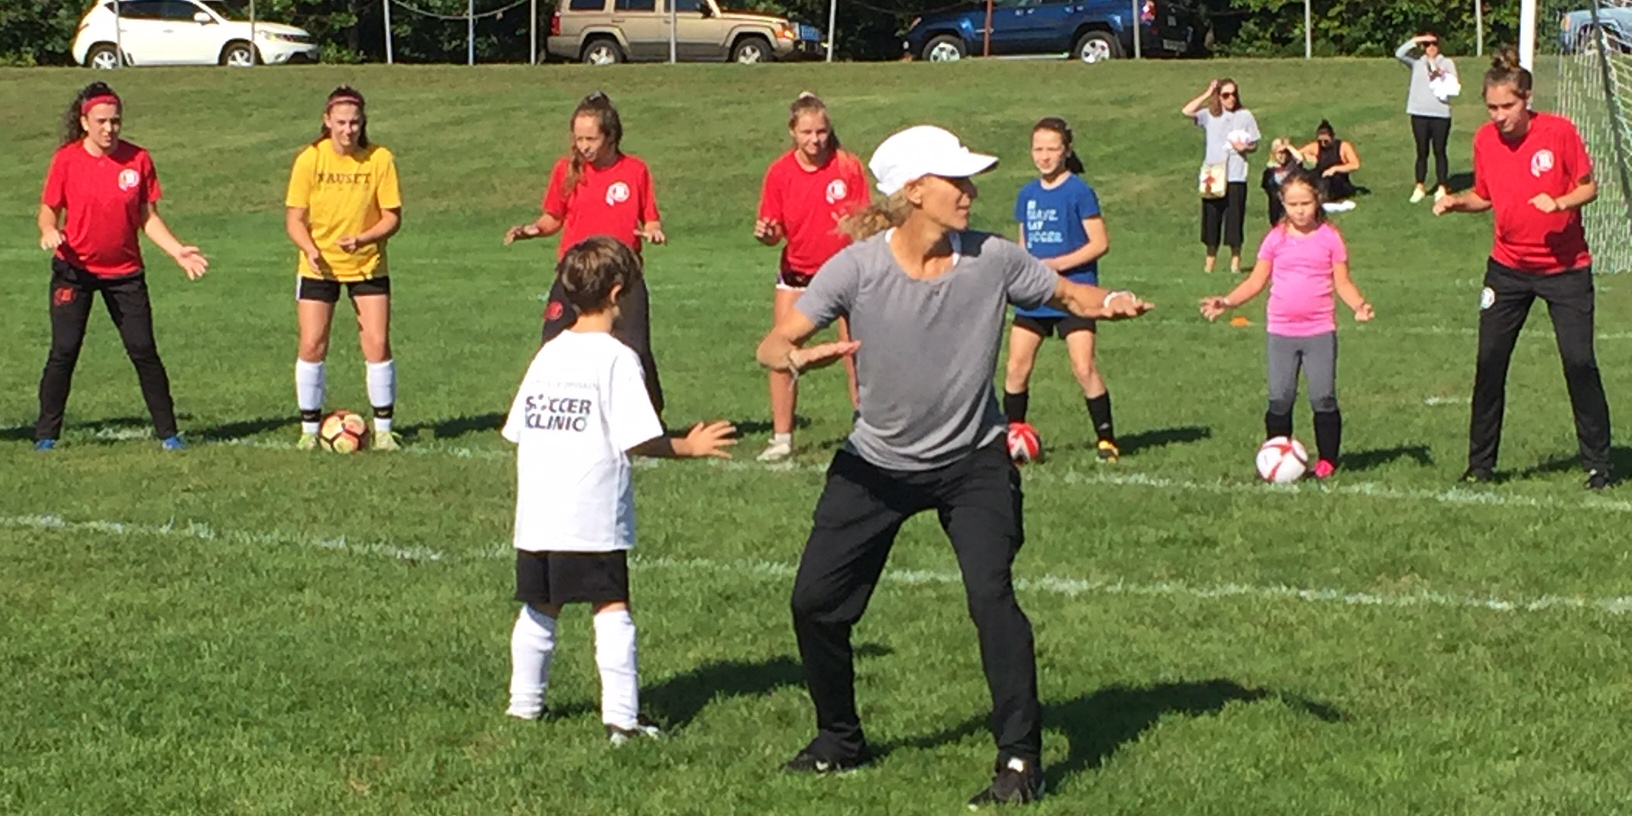 Olympic Gold Medalist Kristine Lilly teaches children on the soccer field.